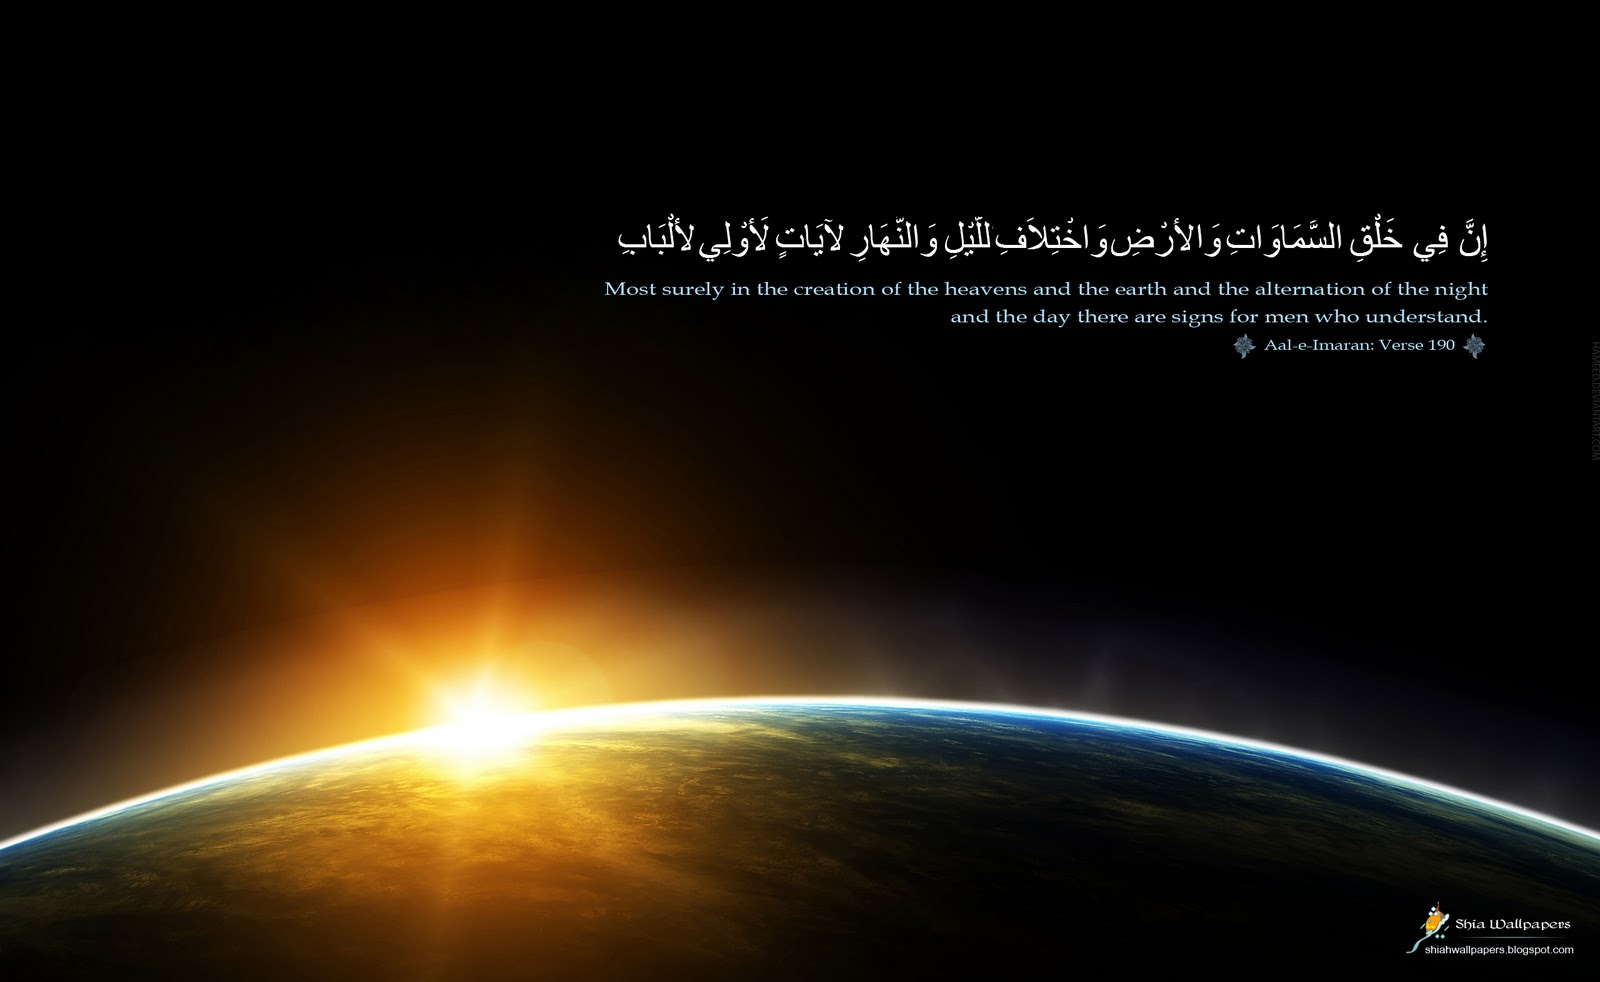 Quran Images High Resolution Allah  swt  says in Holy Quran